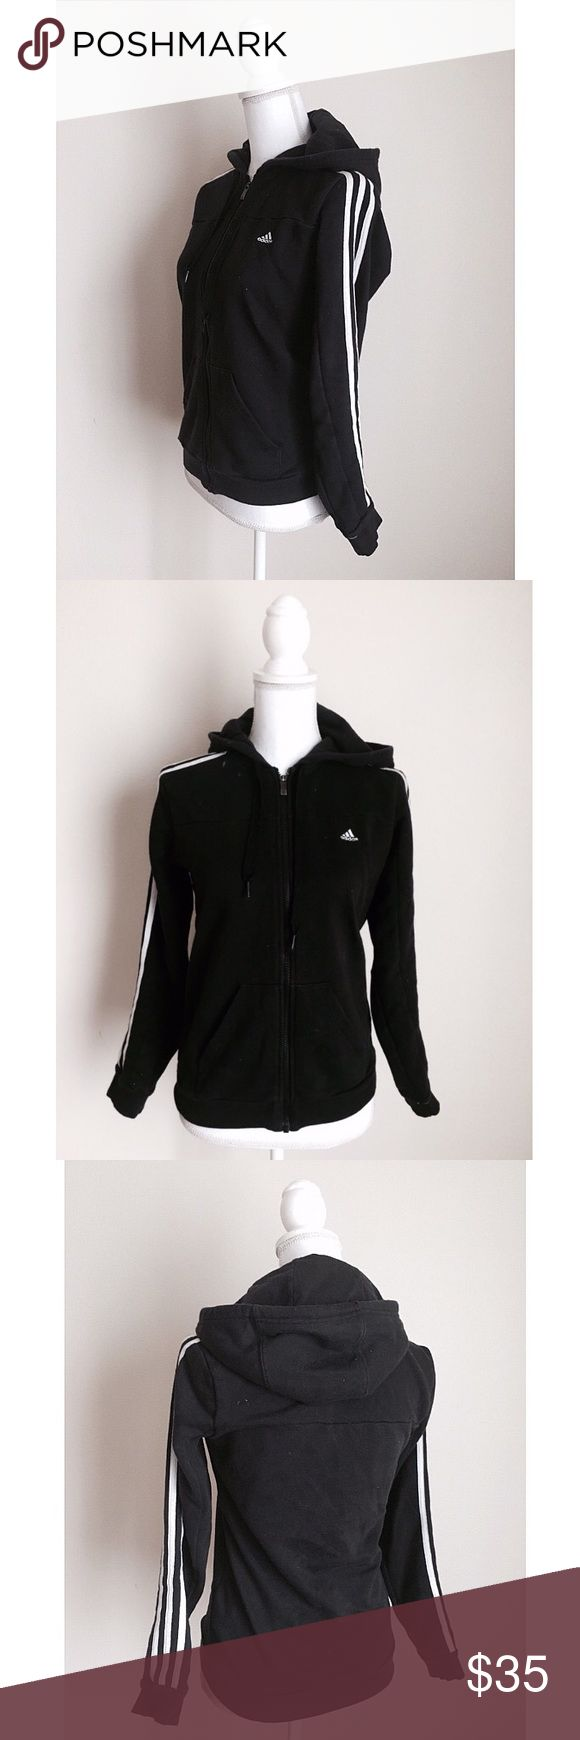 Adidas Perfect Hoodie ✨ Adidas black and white womens hoodie - Super soft sweater material with soft fleece inner - Size XS✨ Adidas Sweaters